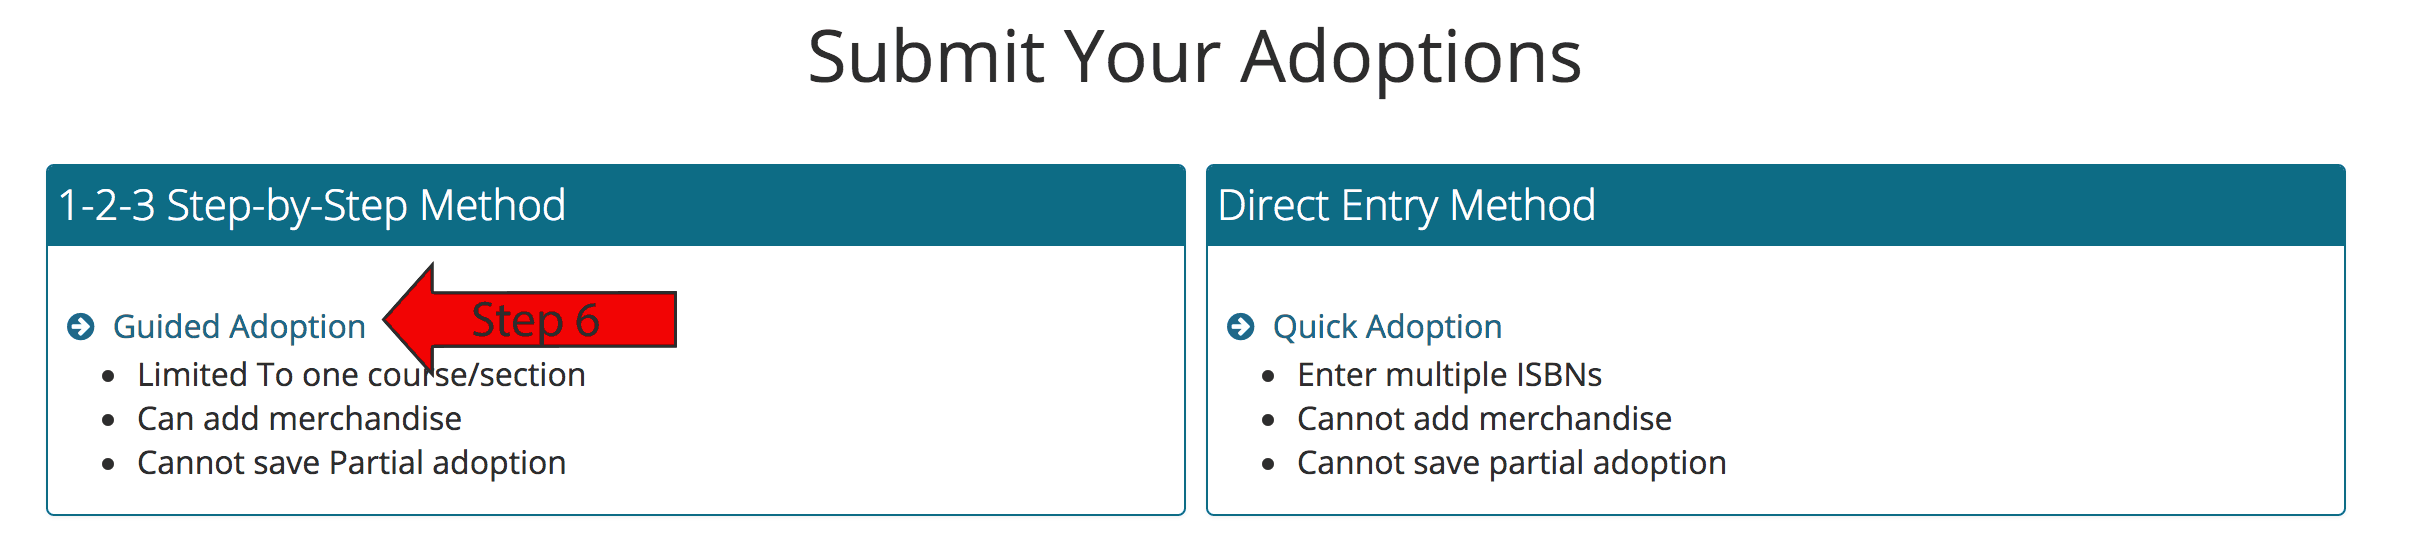 Guided Adoption